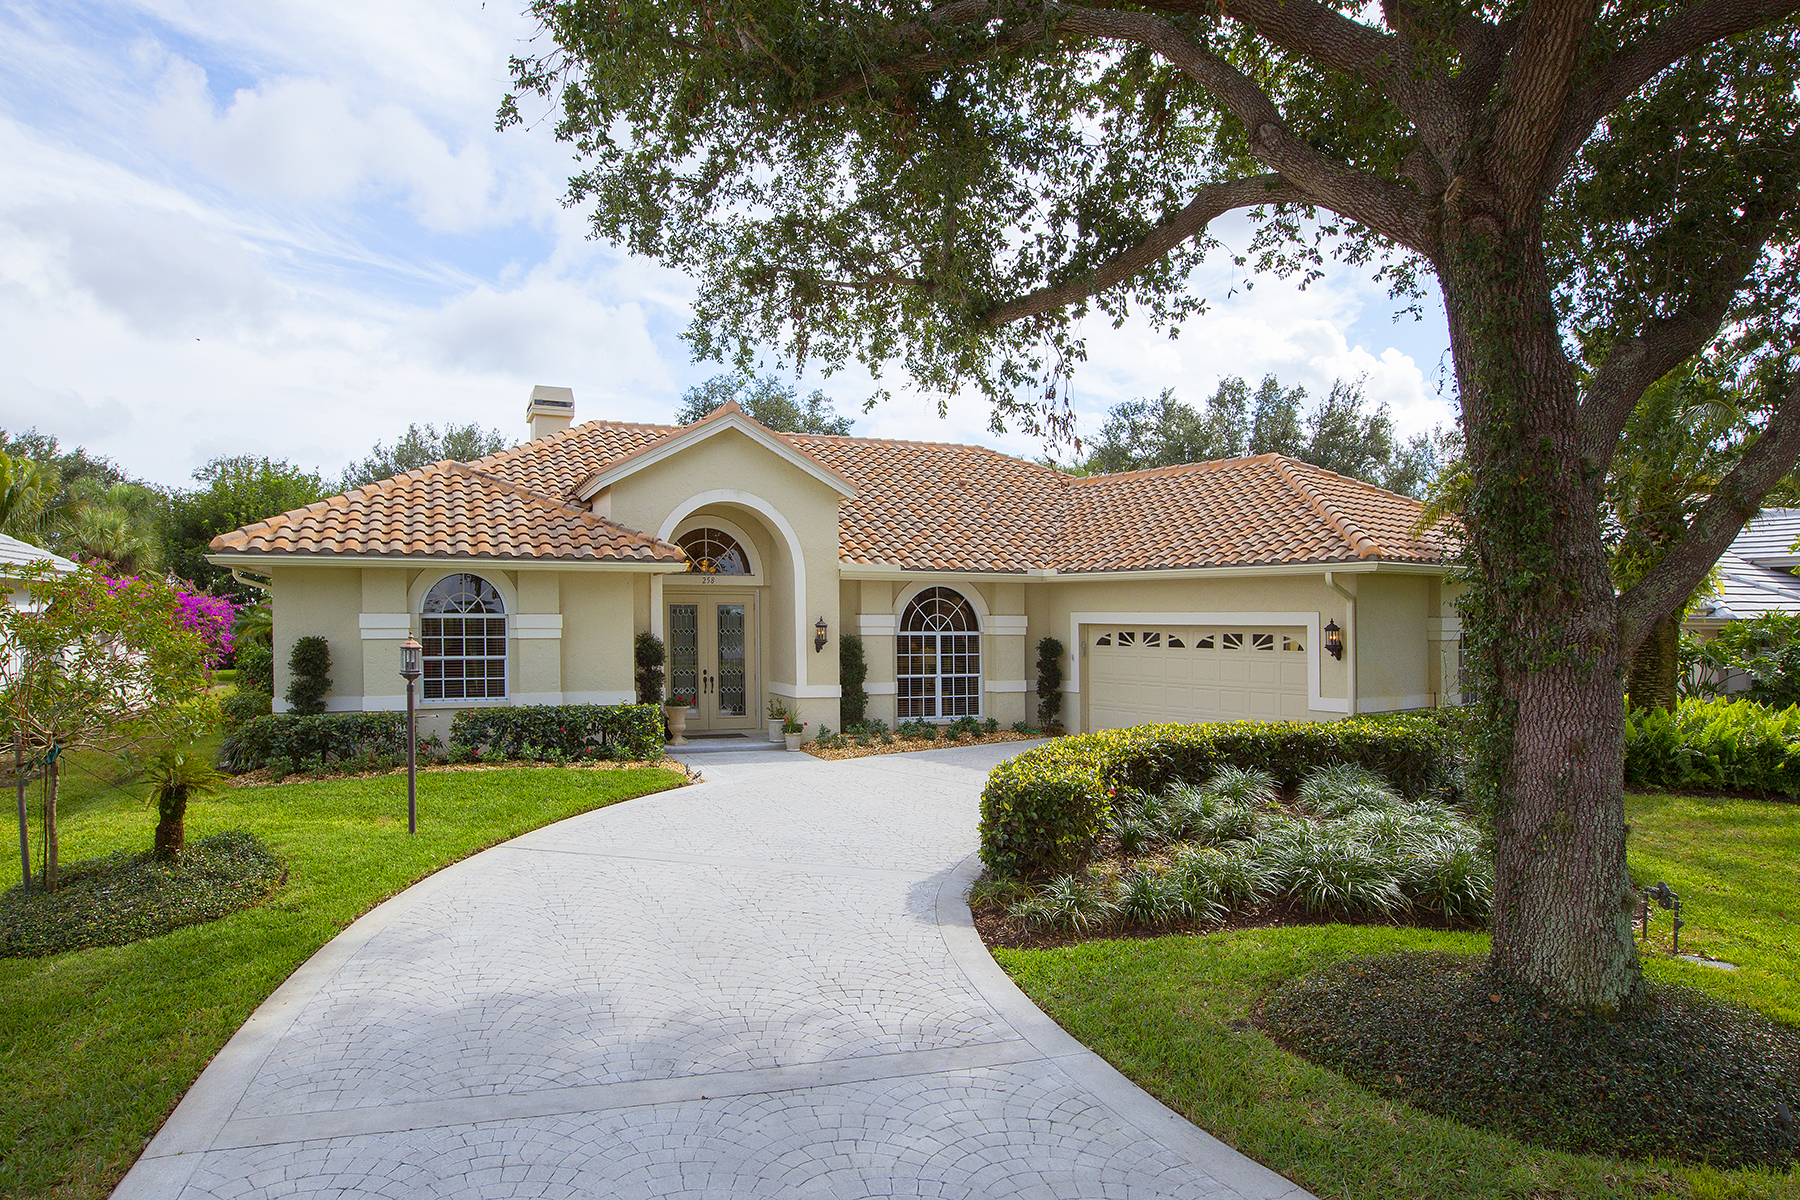 Single Family Home for Sale at Naples 258 Monterey Dr, Naples, Florida 34119 United States